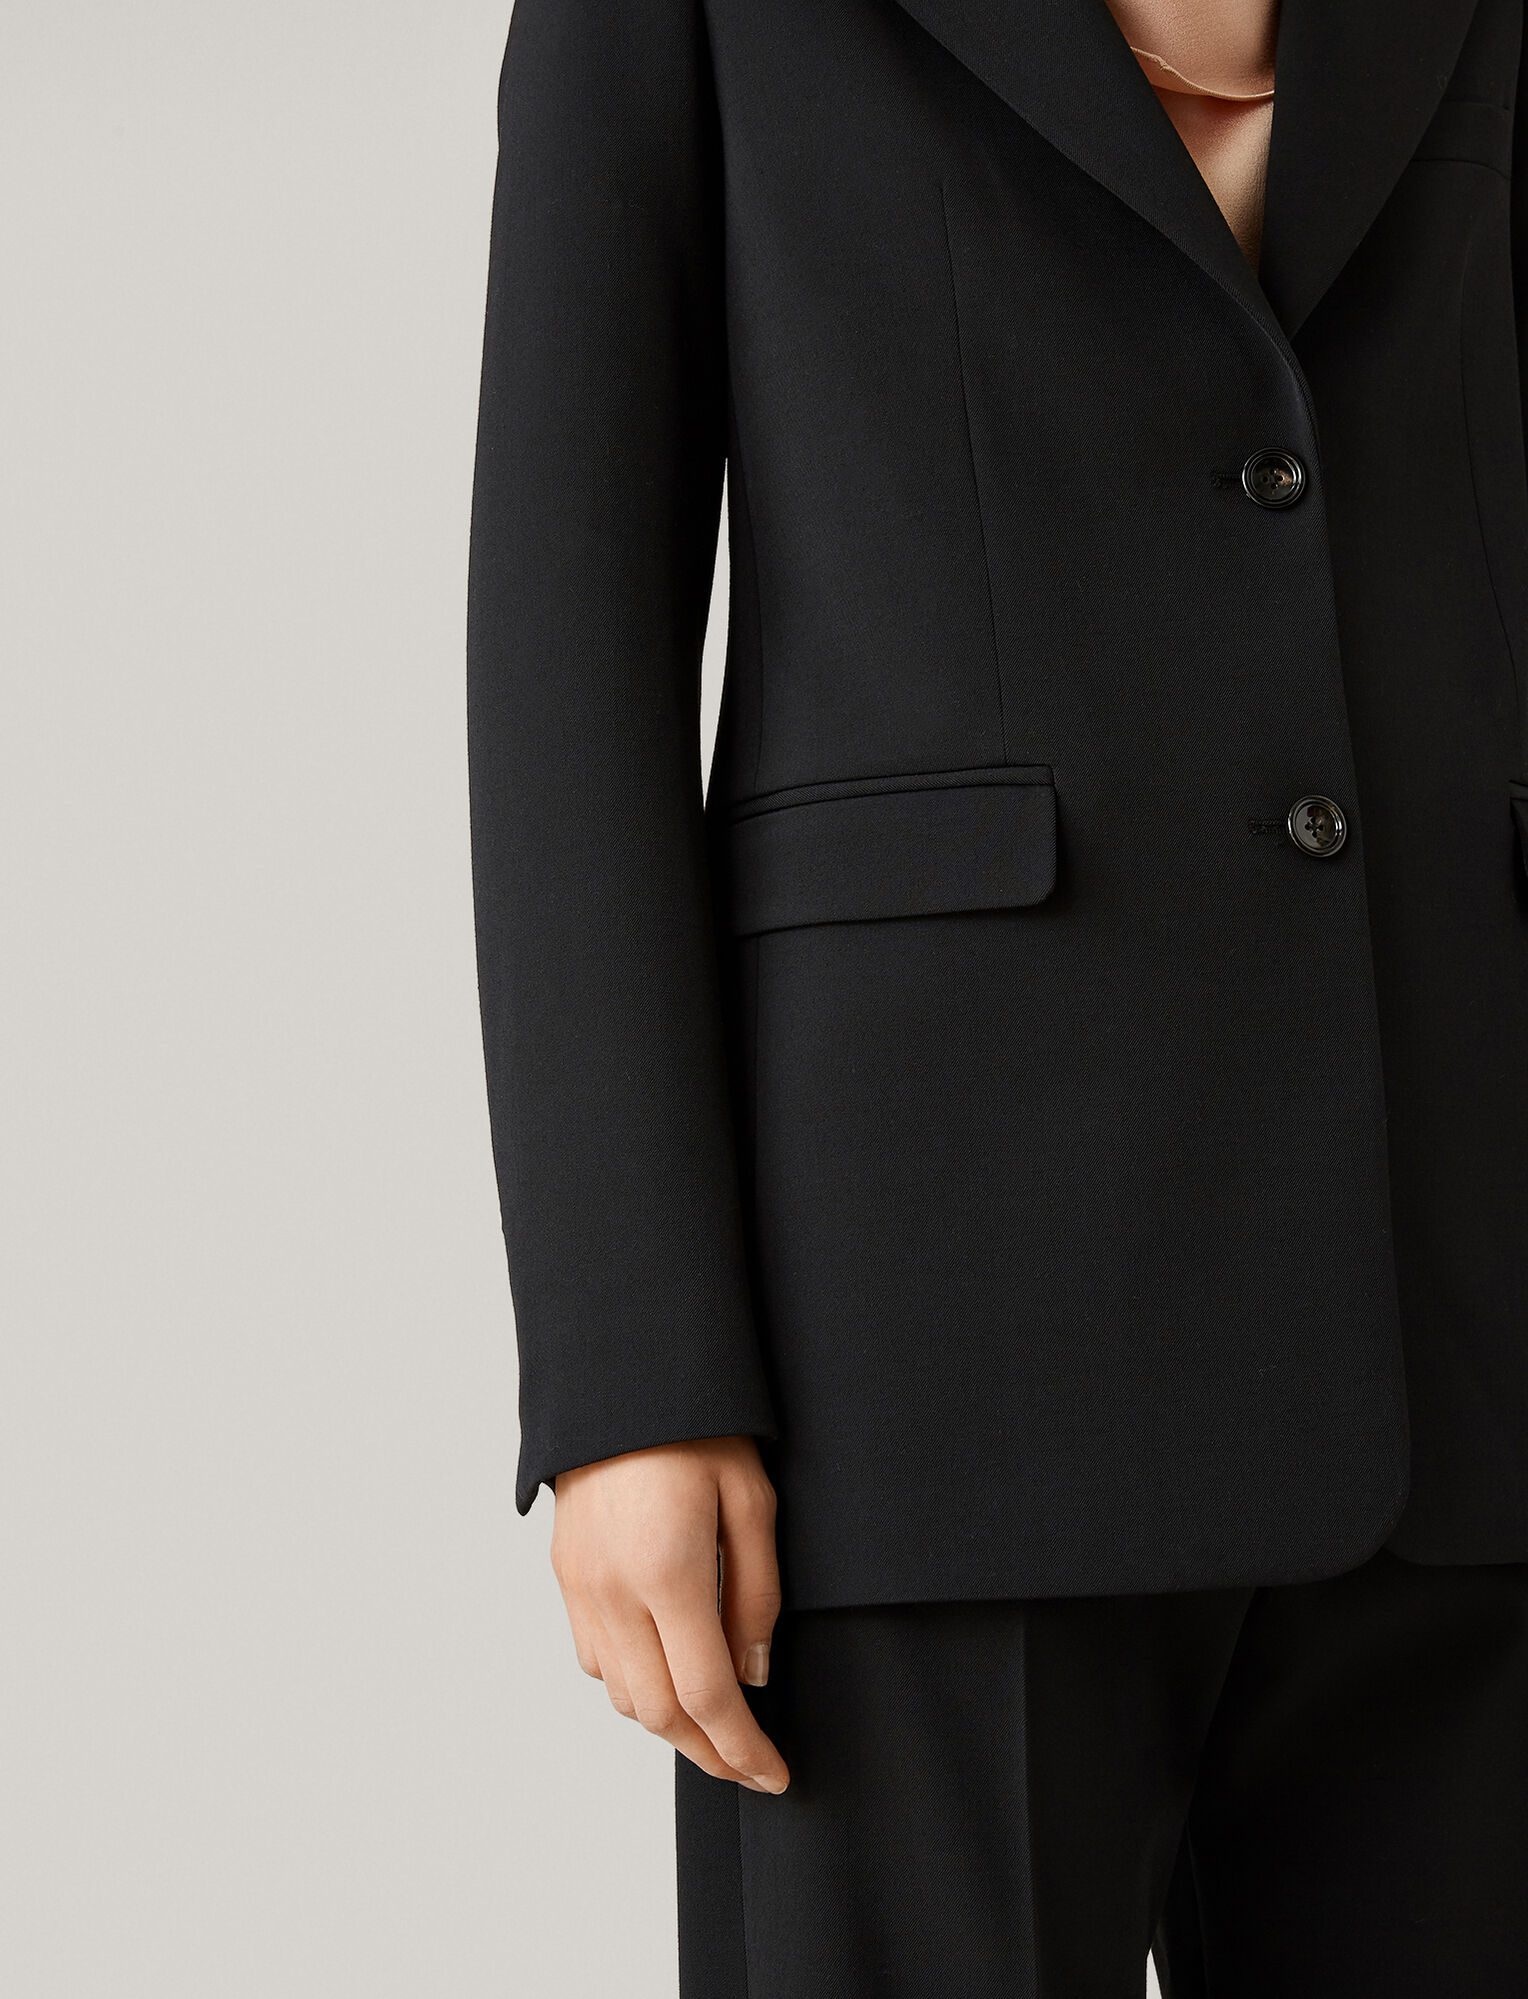 Joseph, New Lorenzo Comfort Wool Jacket, in BLACK